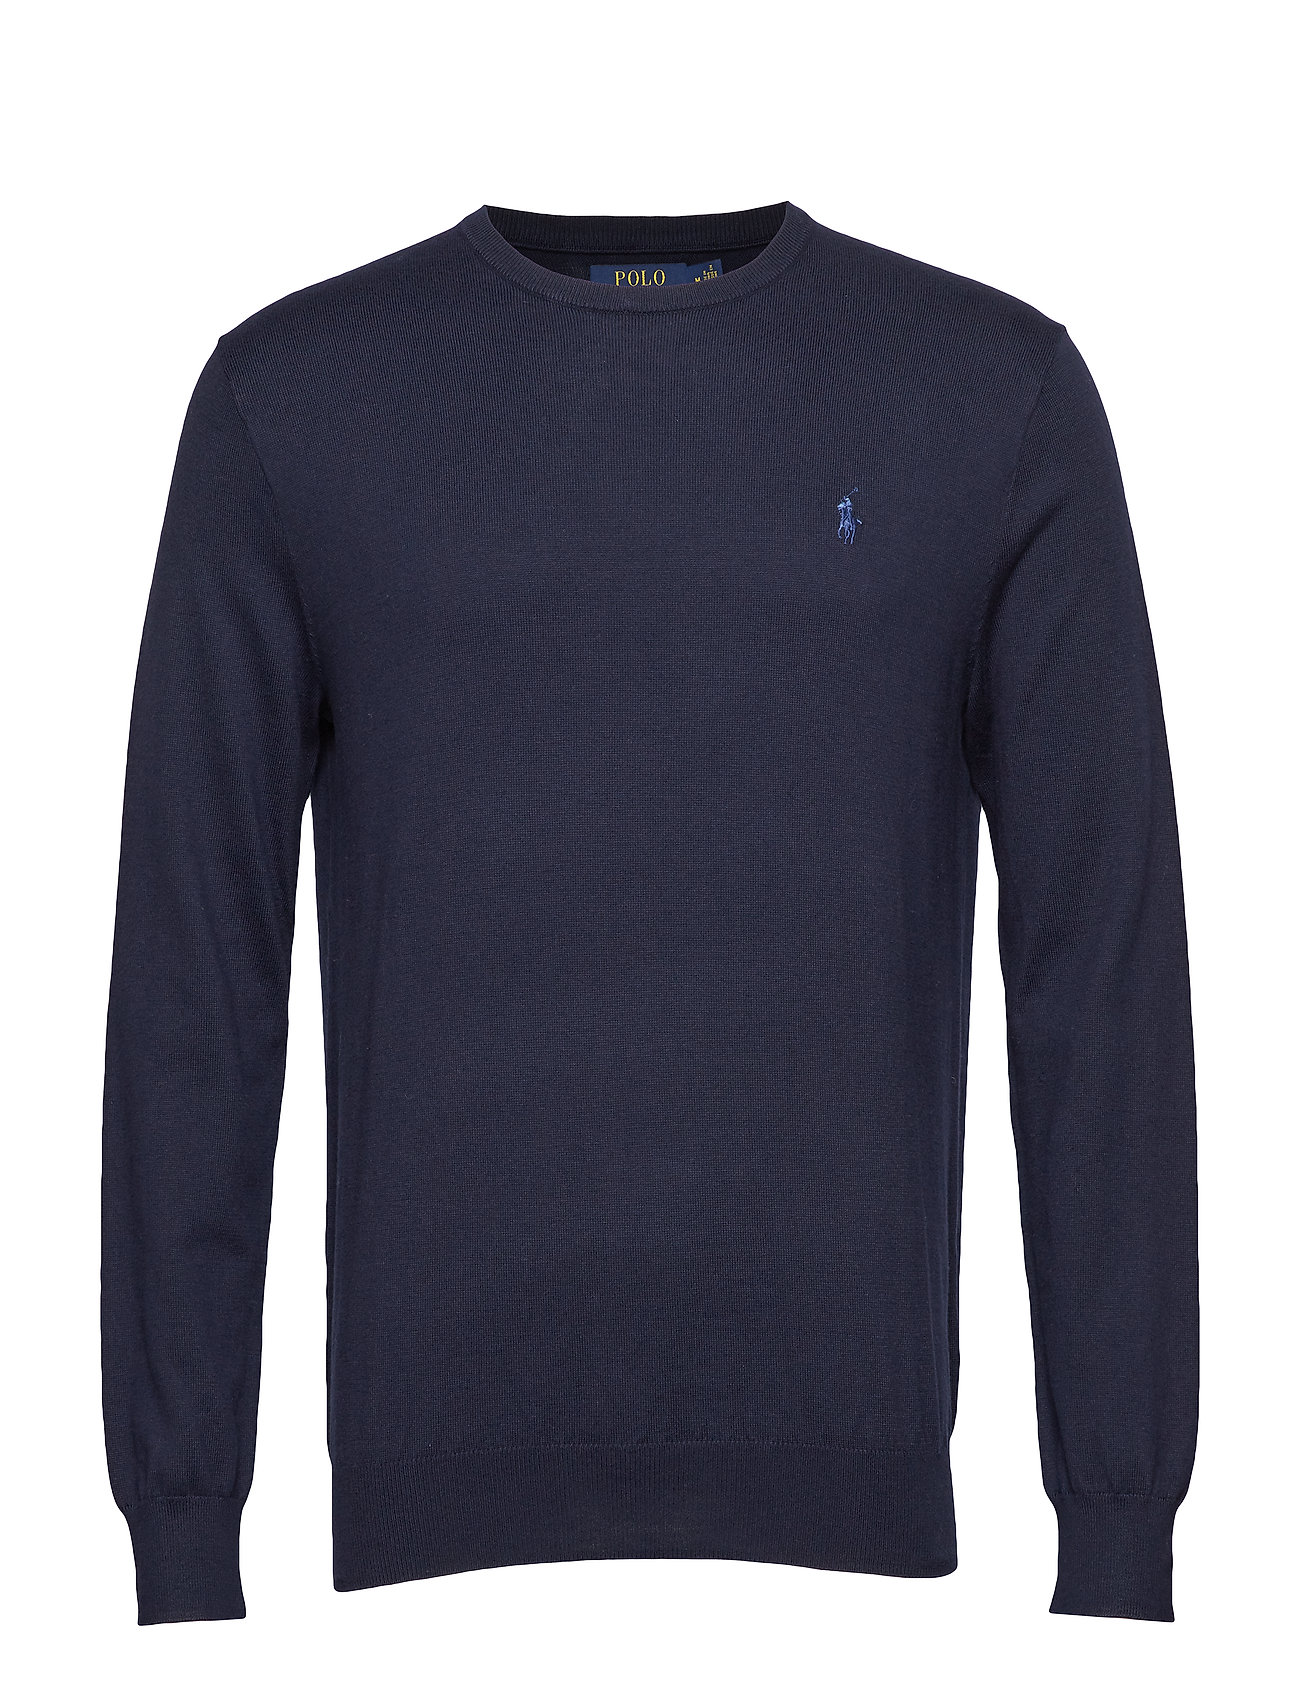 Polo Ralph Lauren Slim Fit Cotton Sweater - HUNTER NAVY